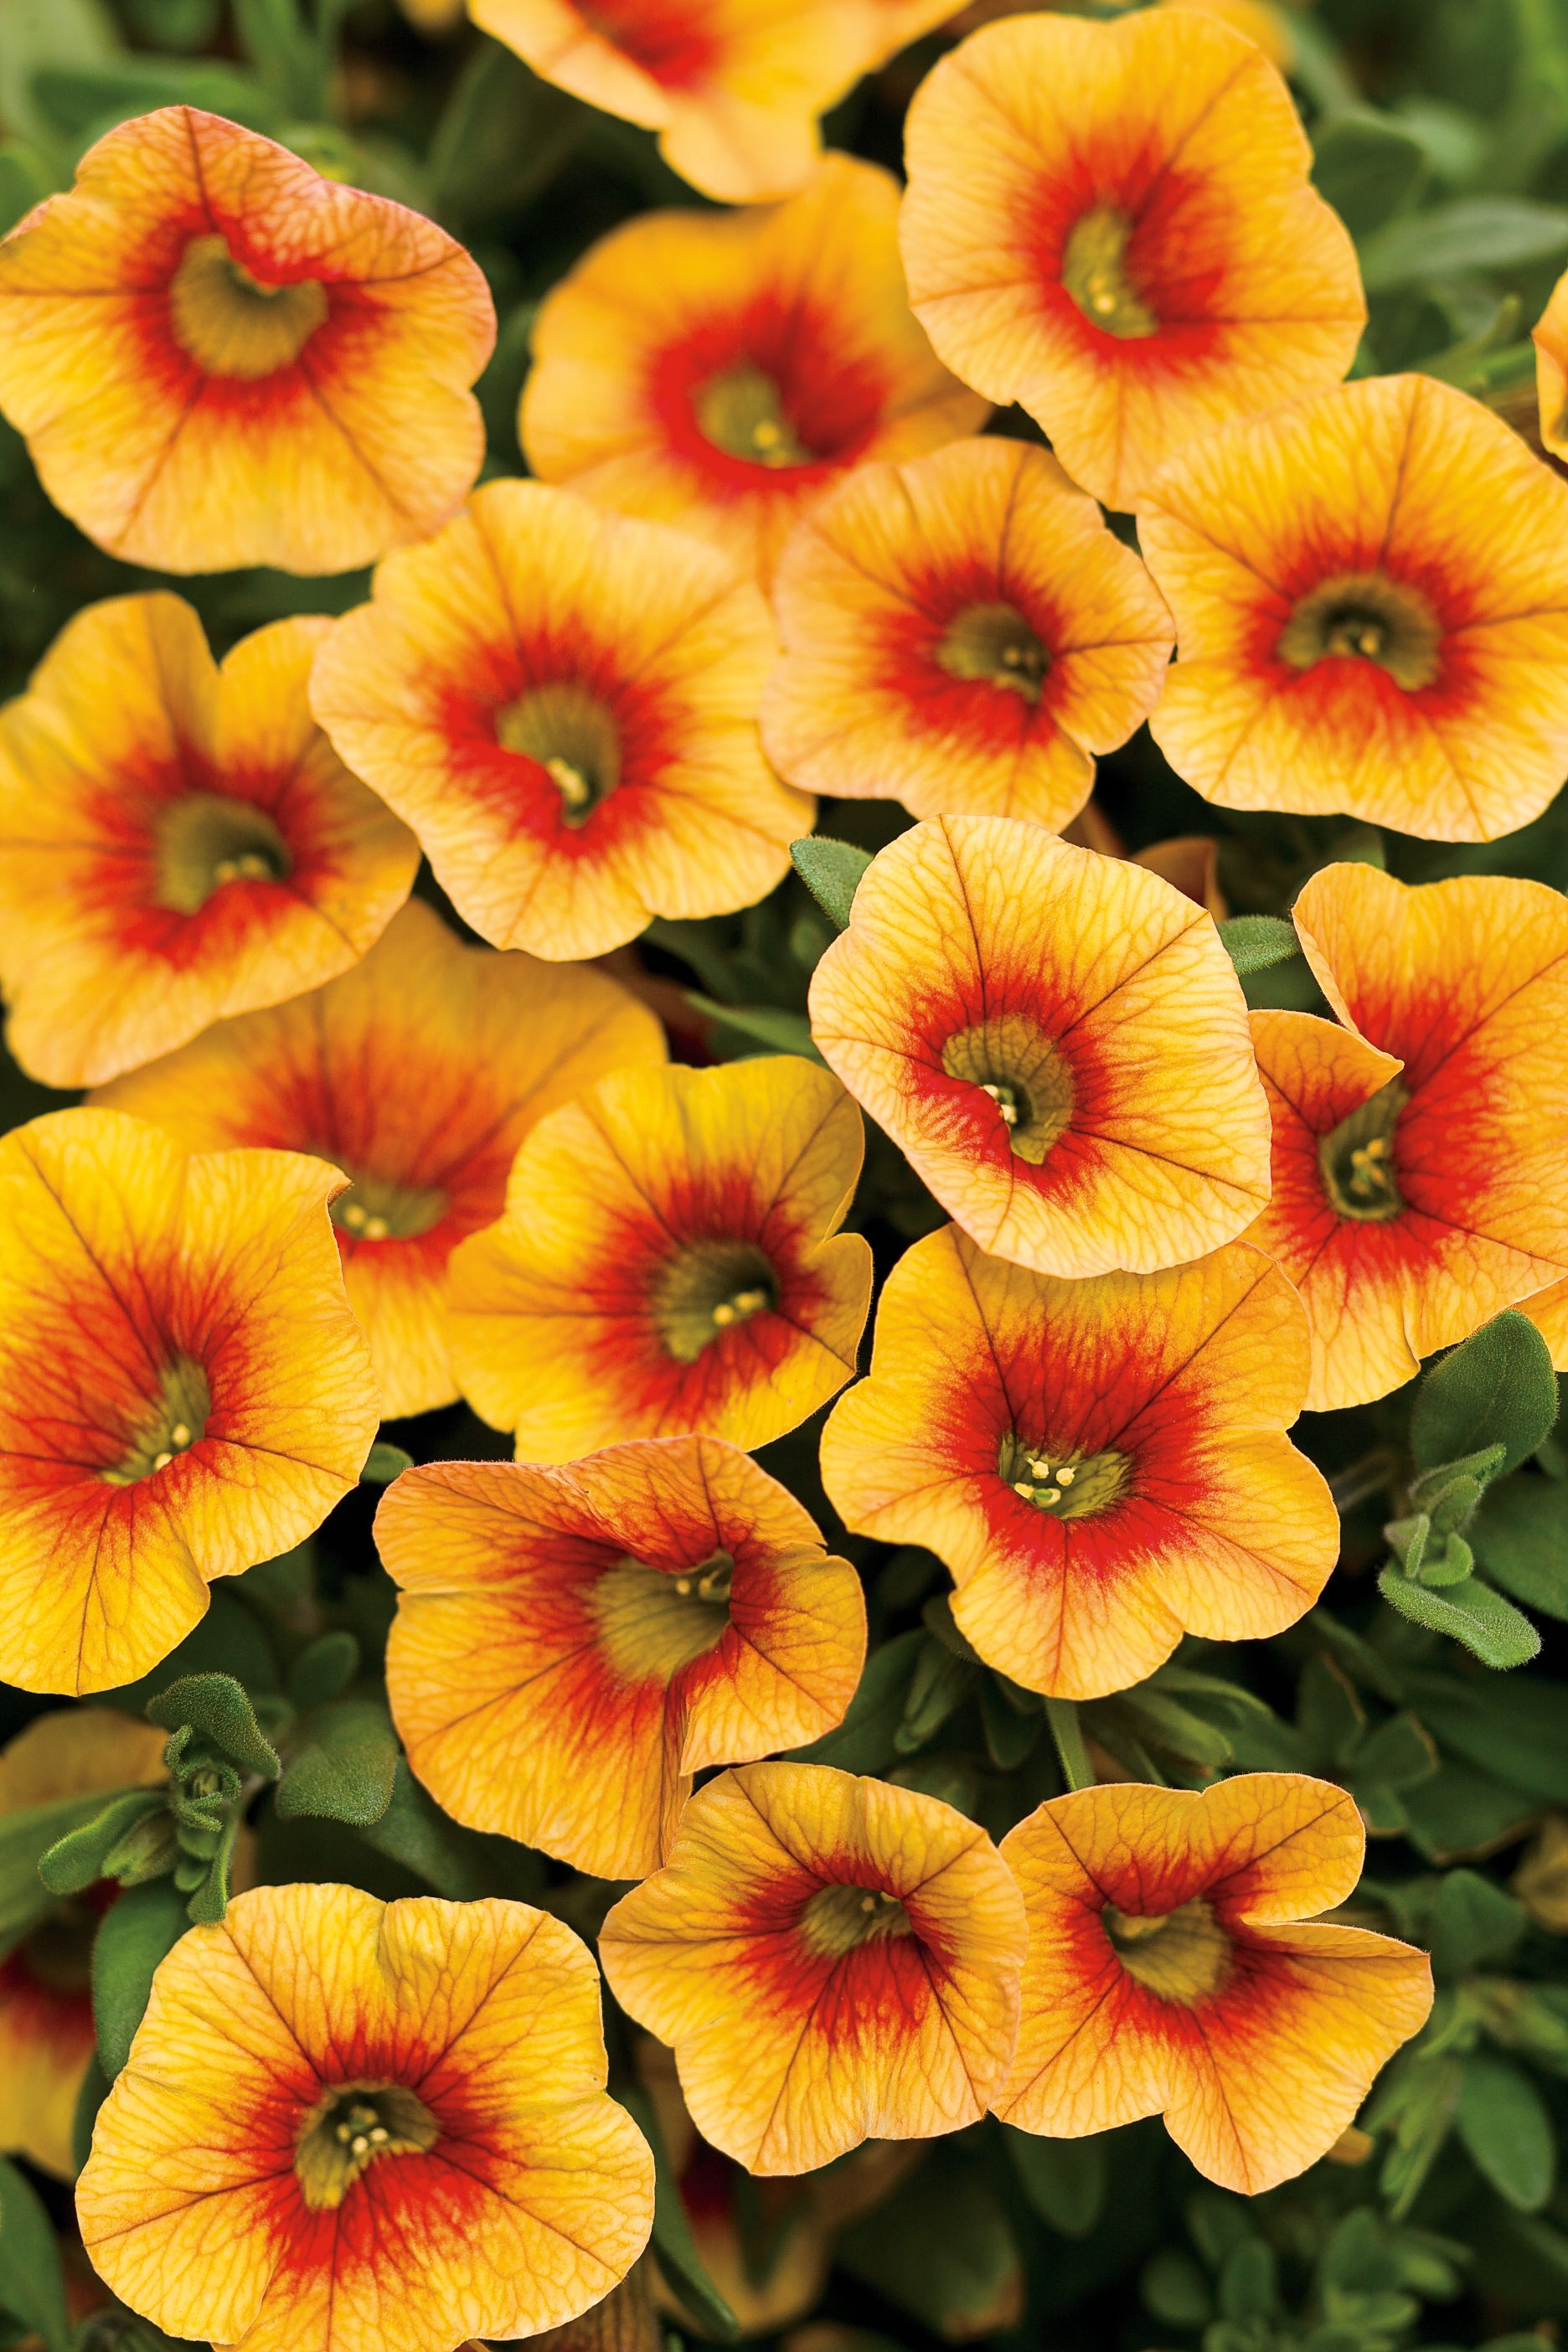 Superbells Apricot Punch Calibrachoa Hybrid Petunias Annual Flowers Yellow Flowers Names